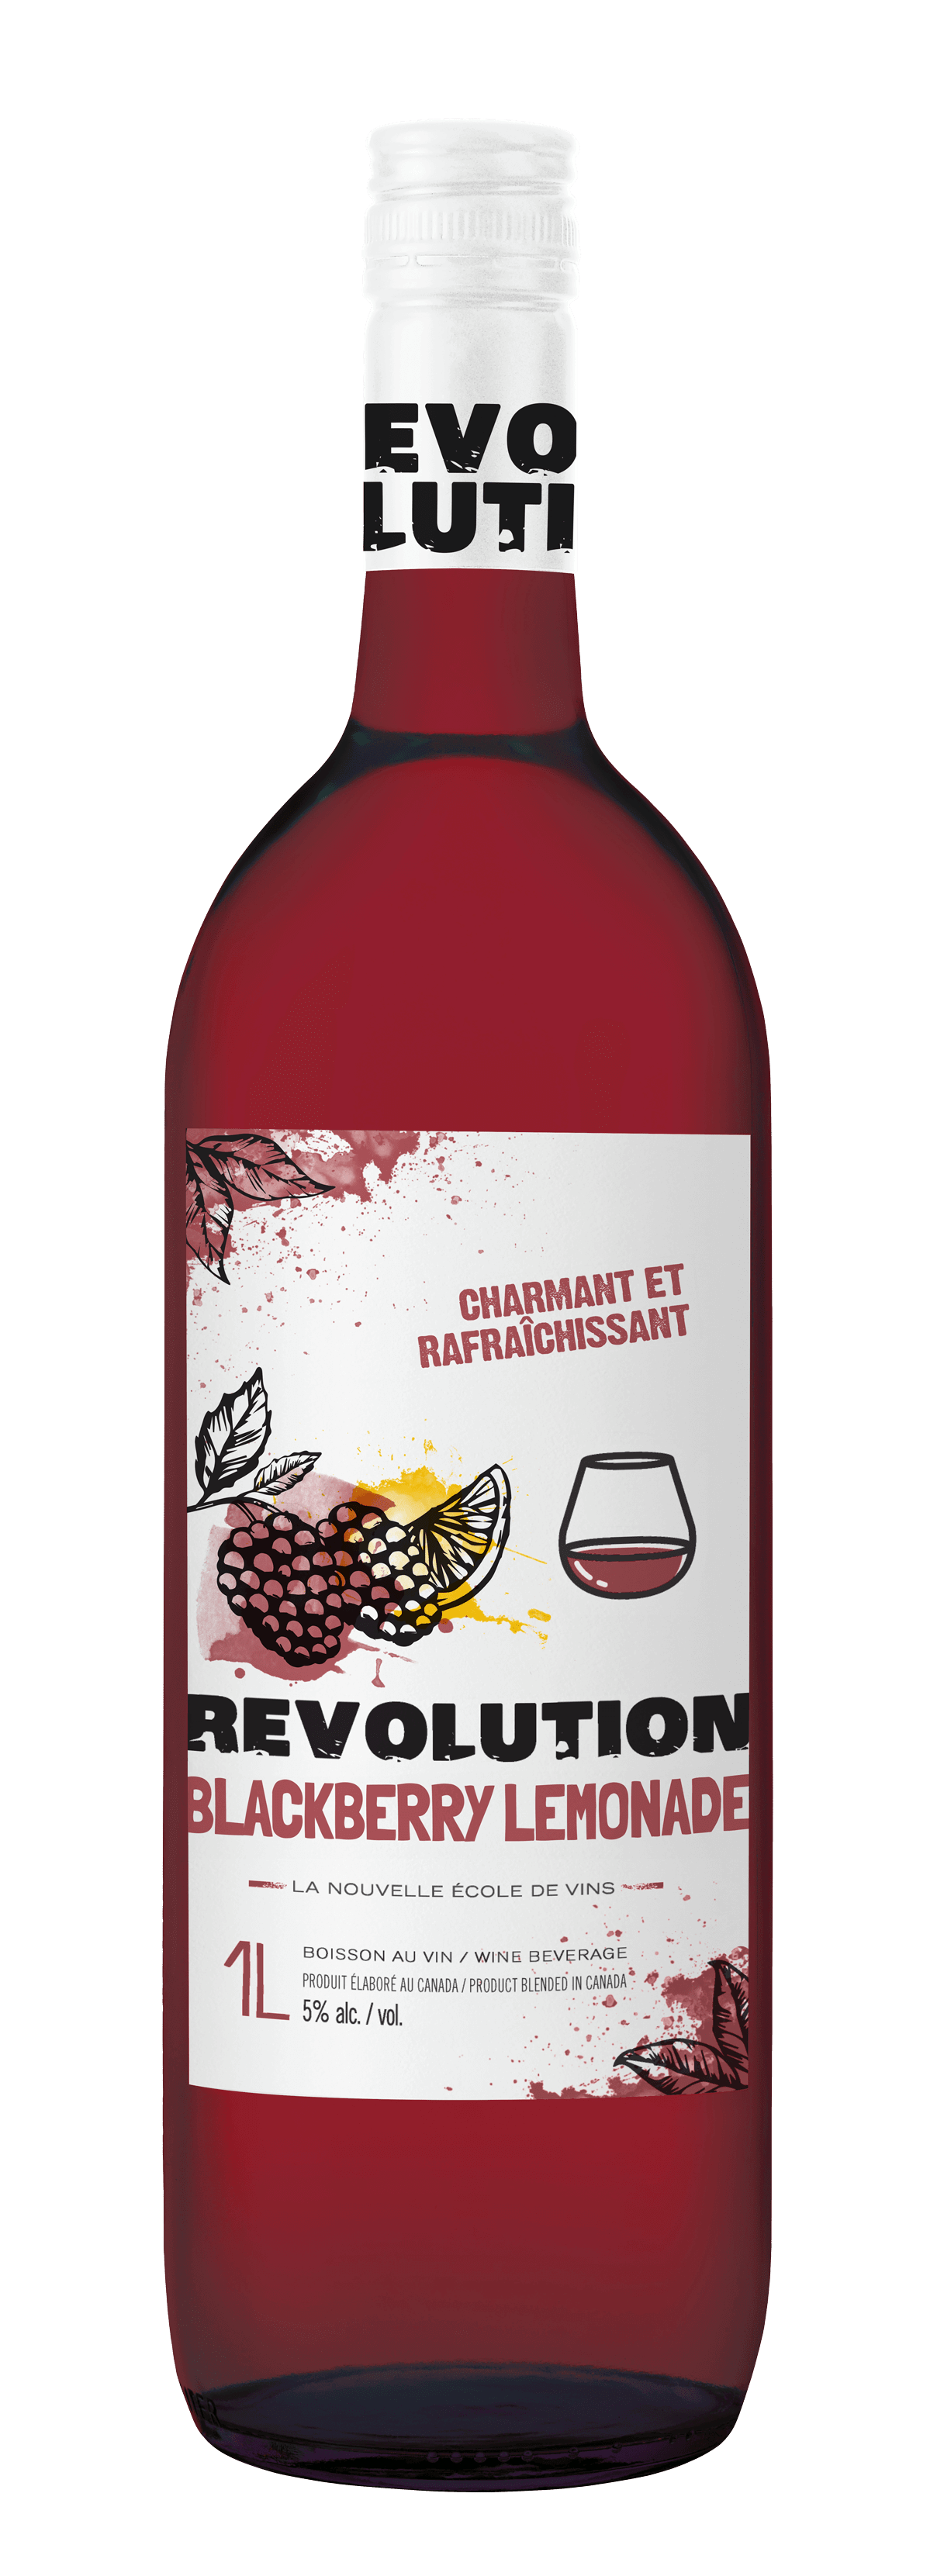 Revolution Blackberry Lemonade